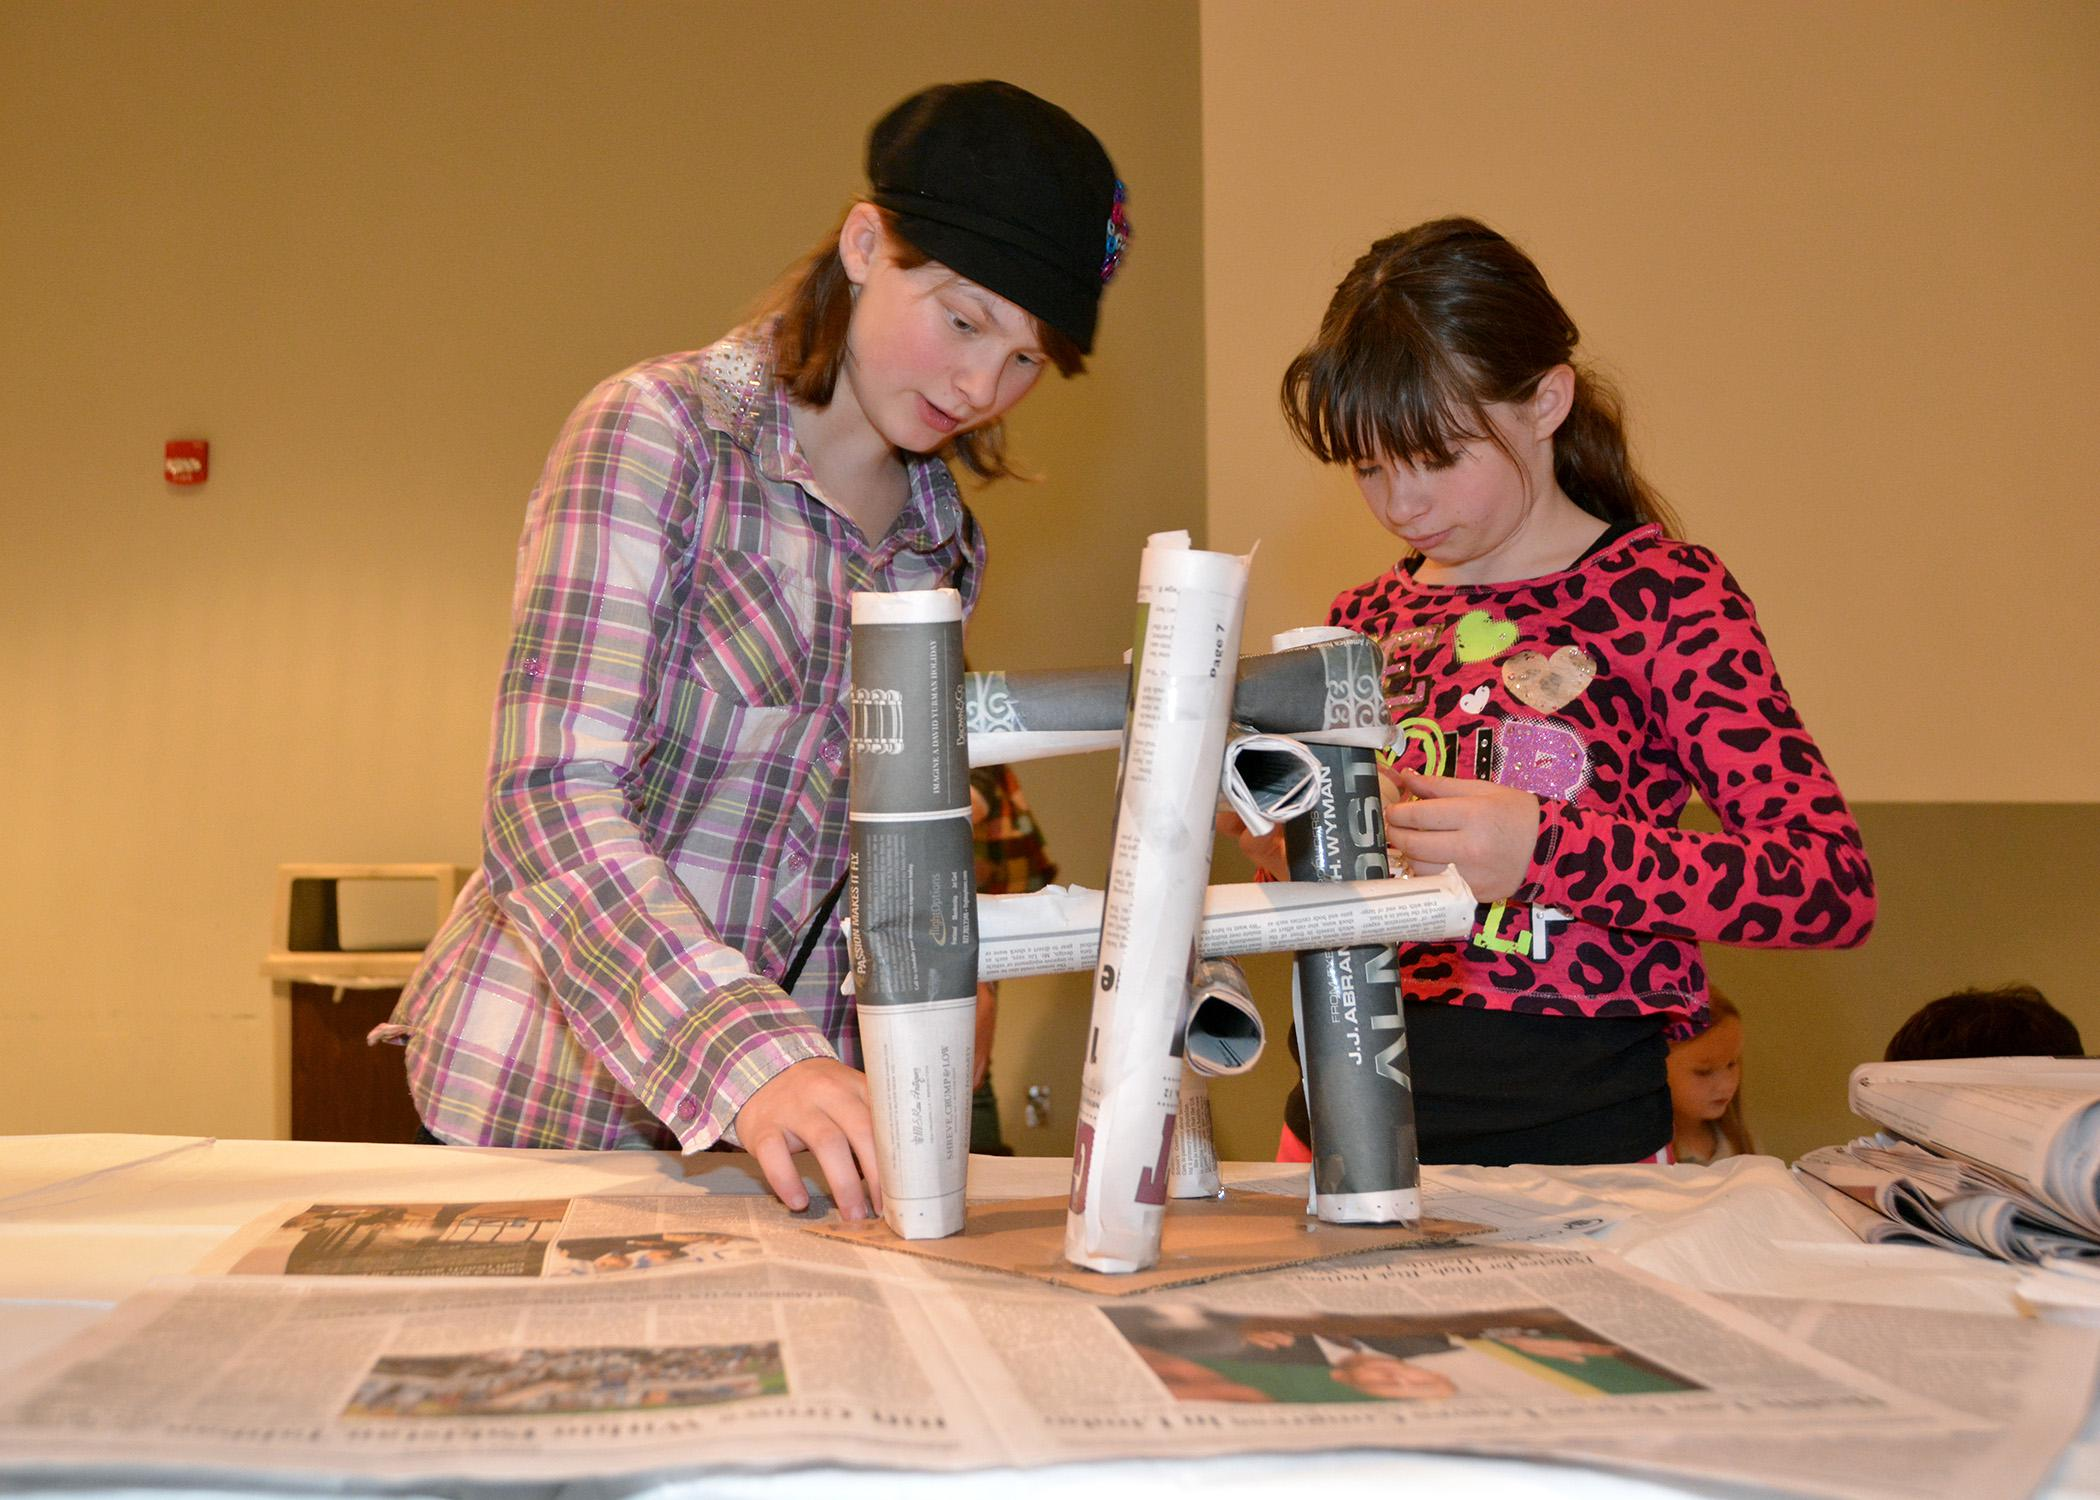 Lisa Cain, 11, and Mary Jane Cain, 10, use rolled-up newspaper to build a paper table at the Mississippi State University Mechanical Engineering Service Learning Showcase Nov. 20. 4-H members tested educational projects developed by MSU students in partnership with MSU's Center for the Advancement of Service-Learning Excellence. (Photo by MSU Ag Communications/Bonnie Coblentz)